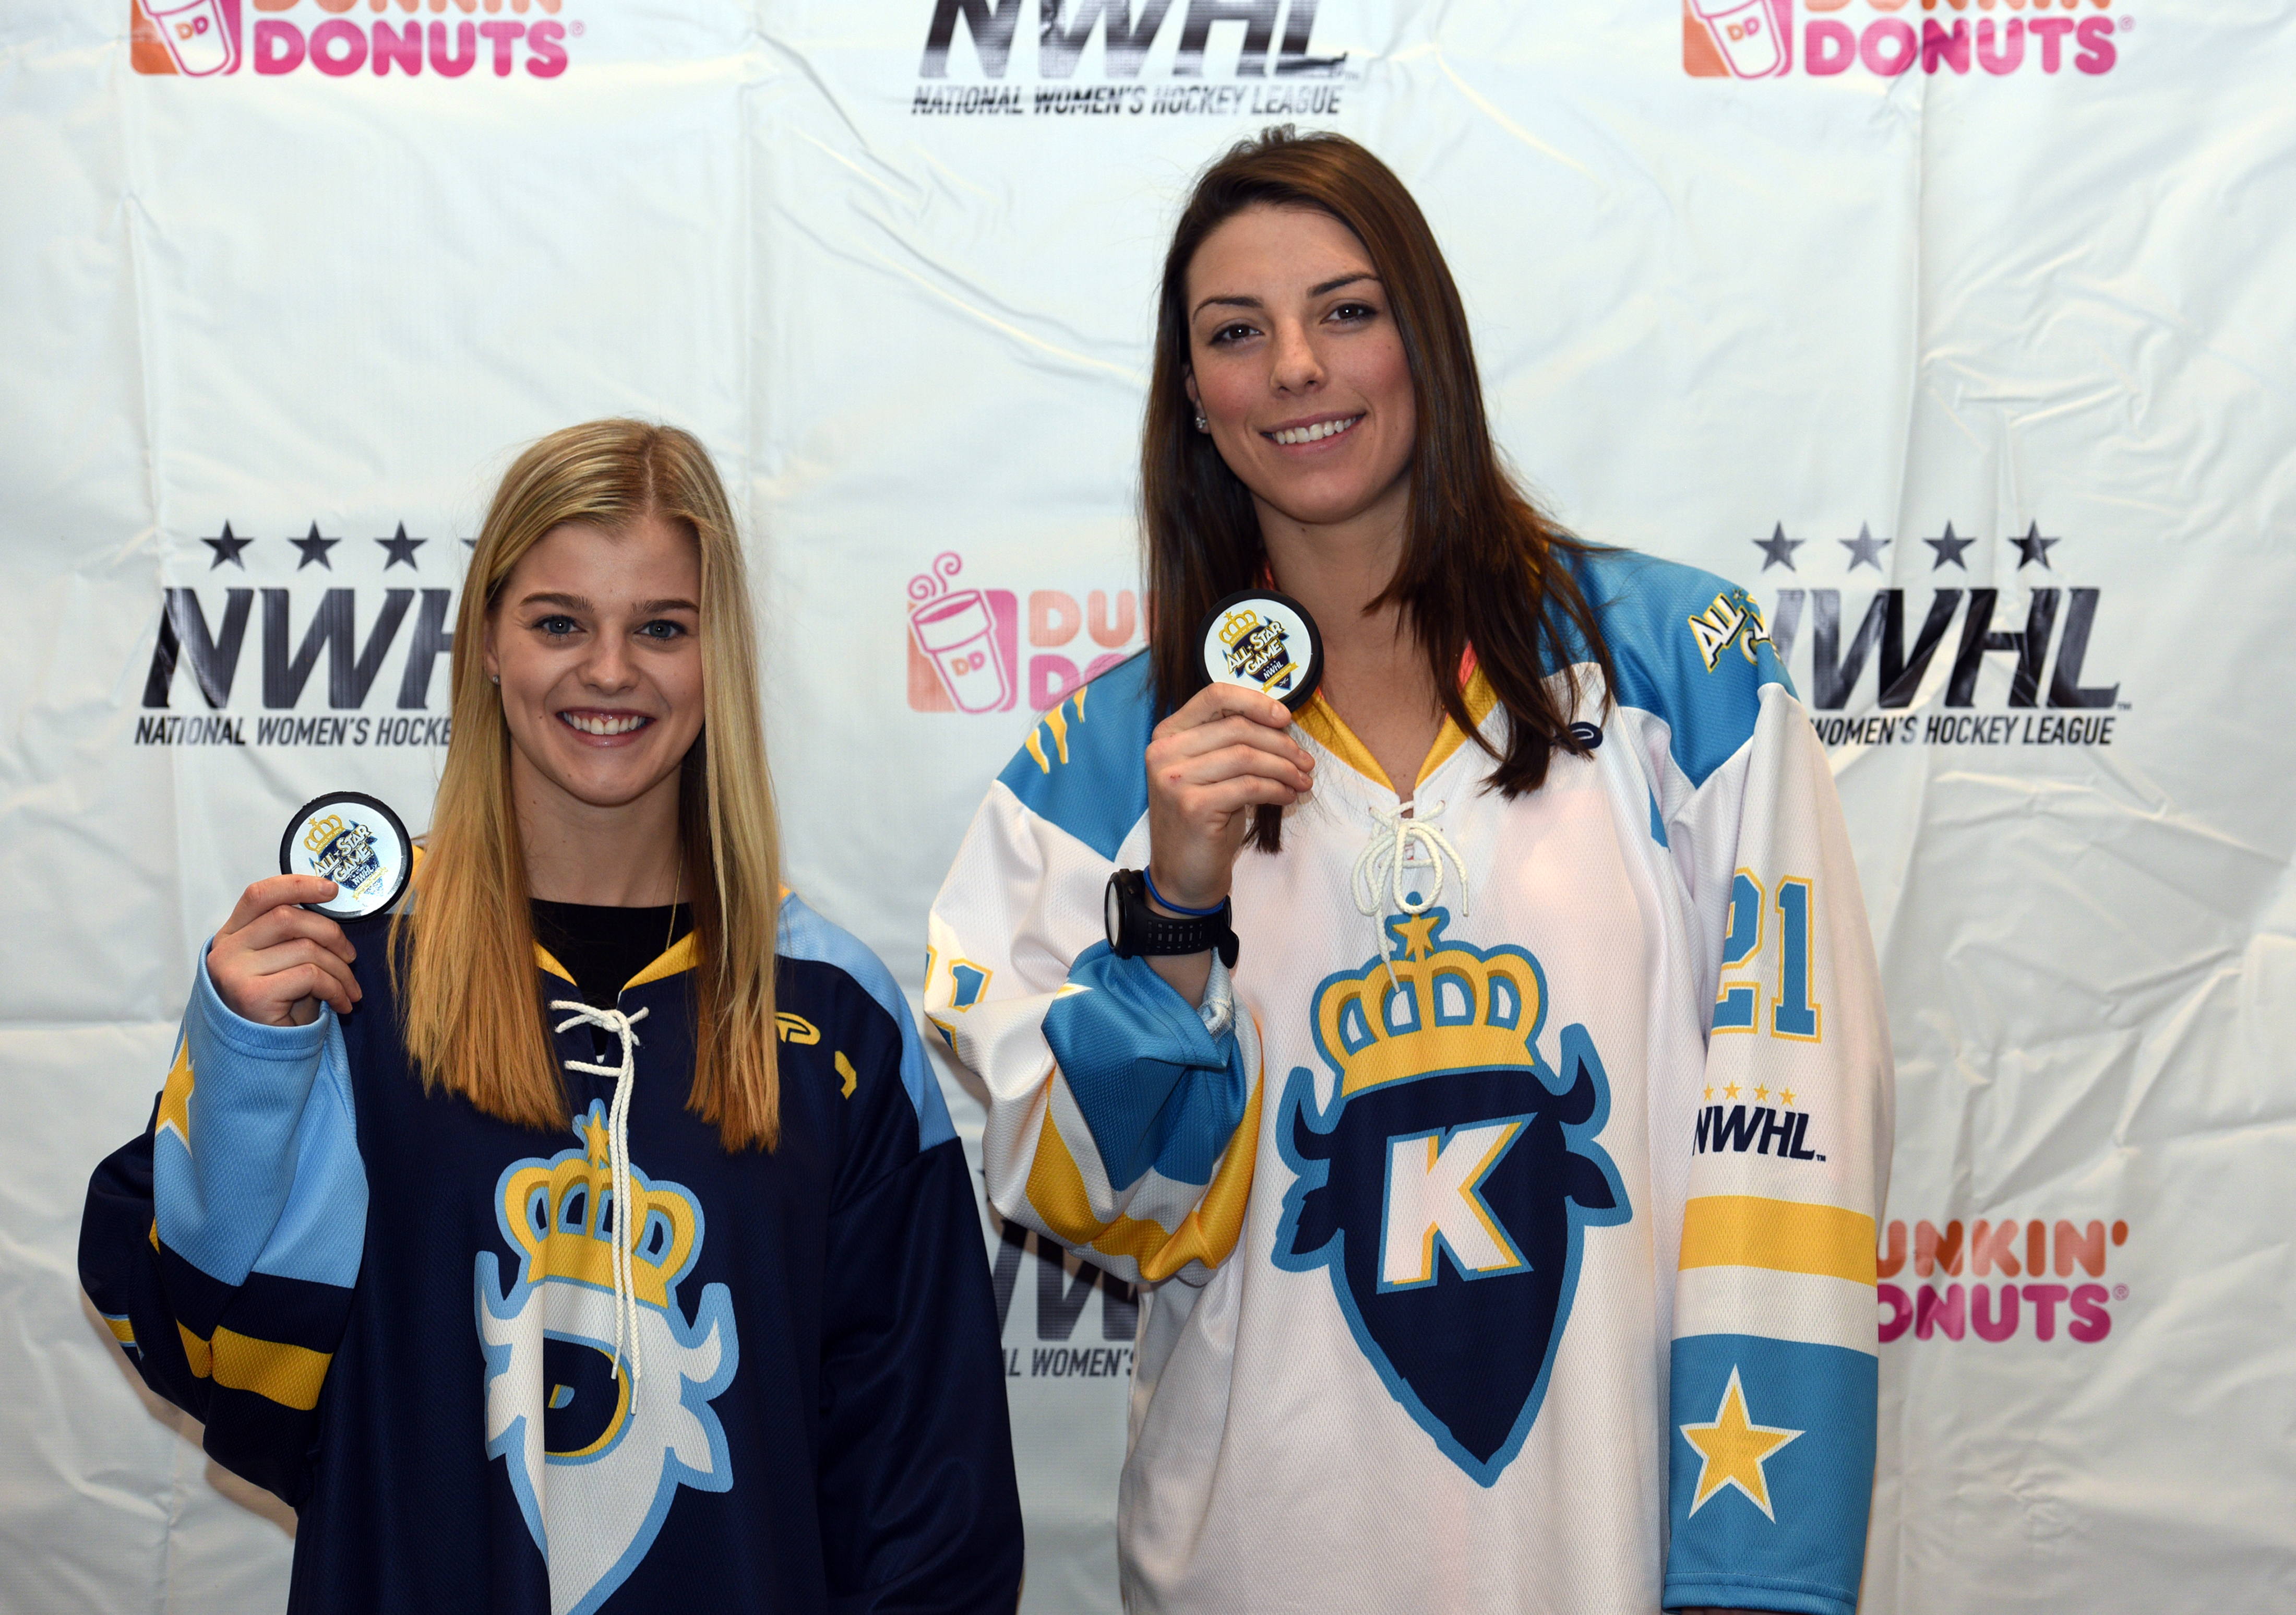 In this Saturday, Jan. 23, 2016, photo, National Women's Hockey League All-Star captains Hilary Knight, left, and Emily Pfalzer pose holding game pucks in Buffalo, N.Y. In just its first year, the upstart U.S.-based NWHL beat it's longer-established, Cana